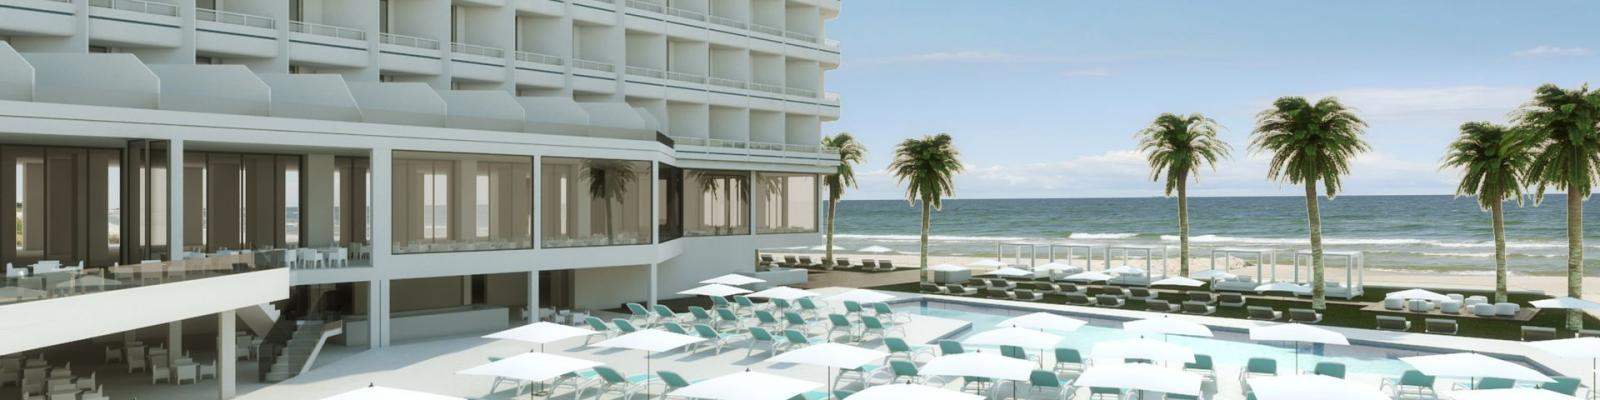 The New Algarb Hotel - All inclusive Ibiza